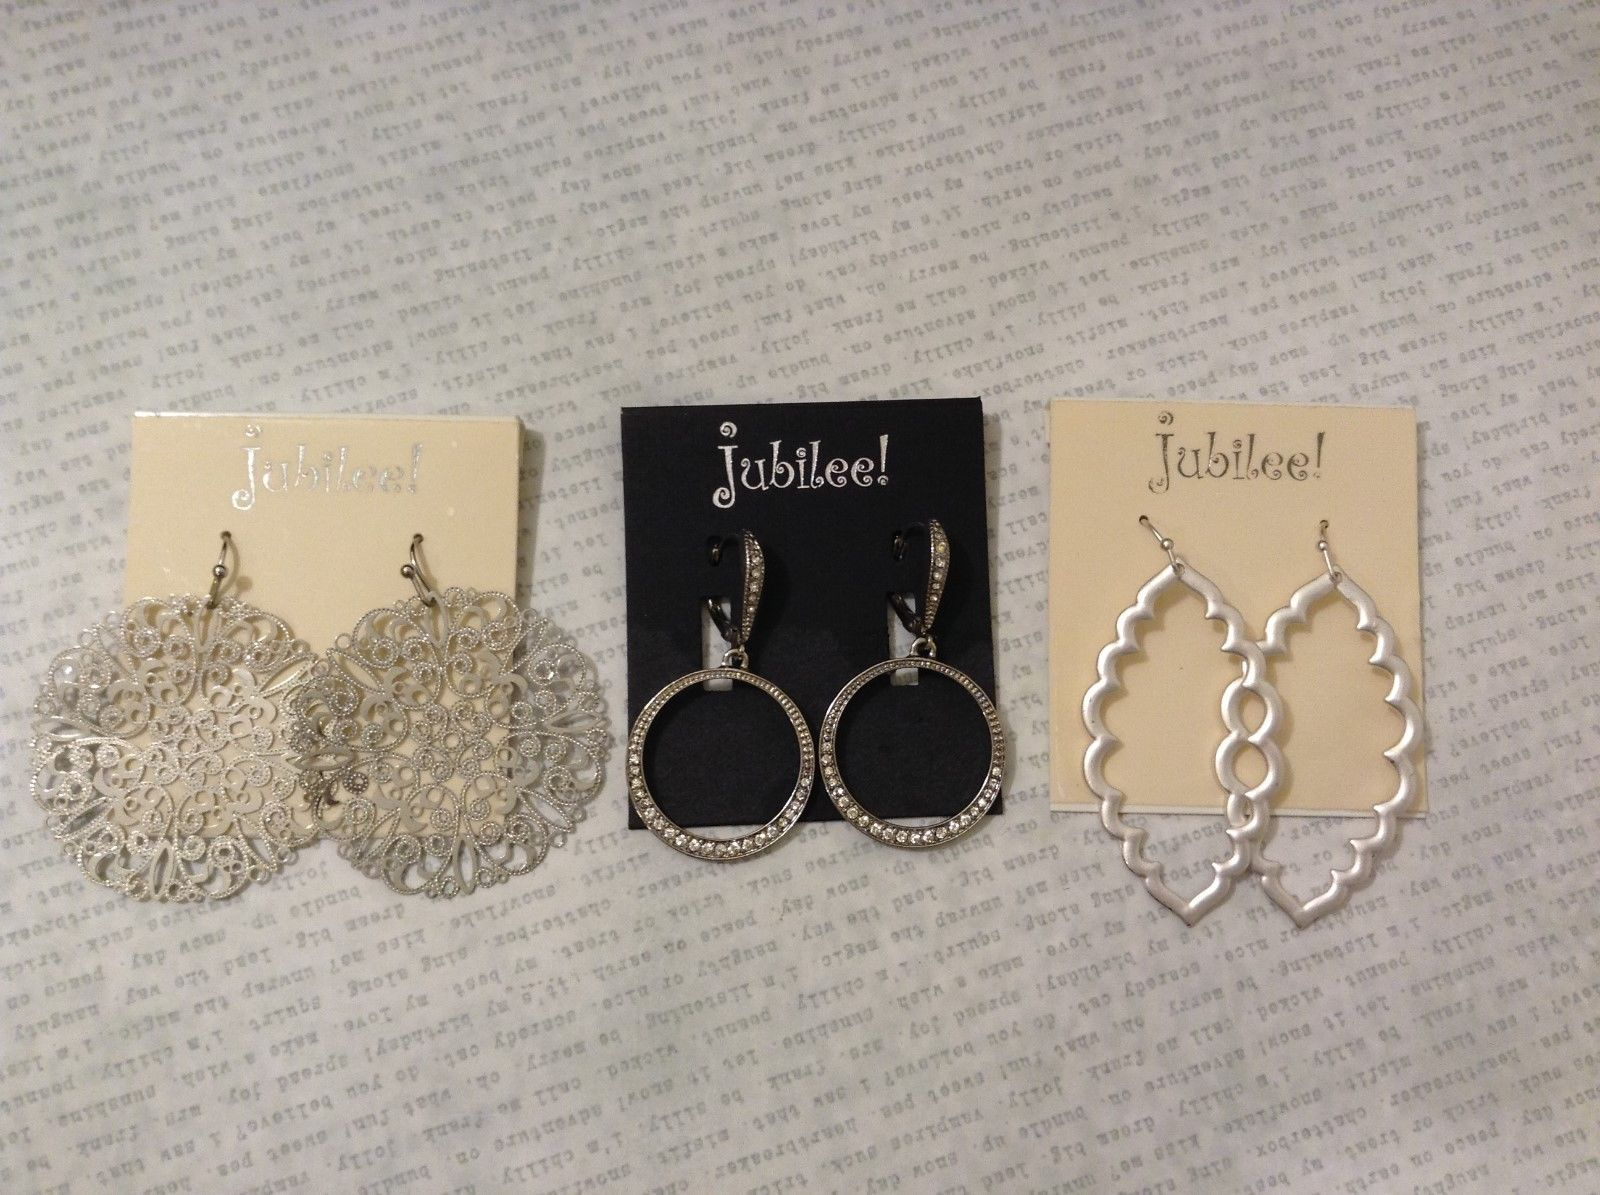 NEW Jubilee Silvertone Metal Earrings